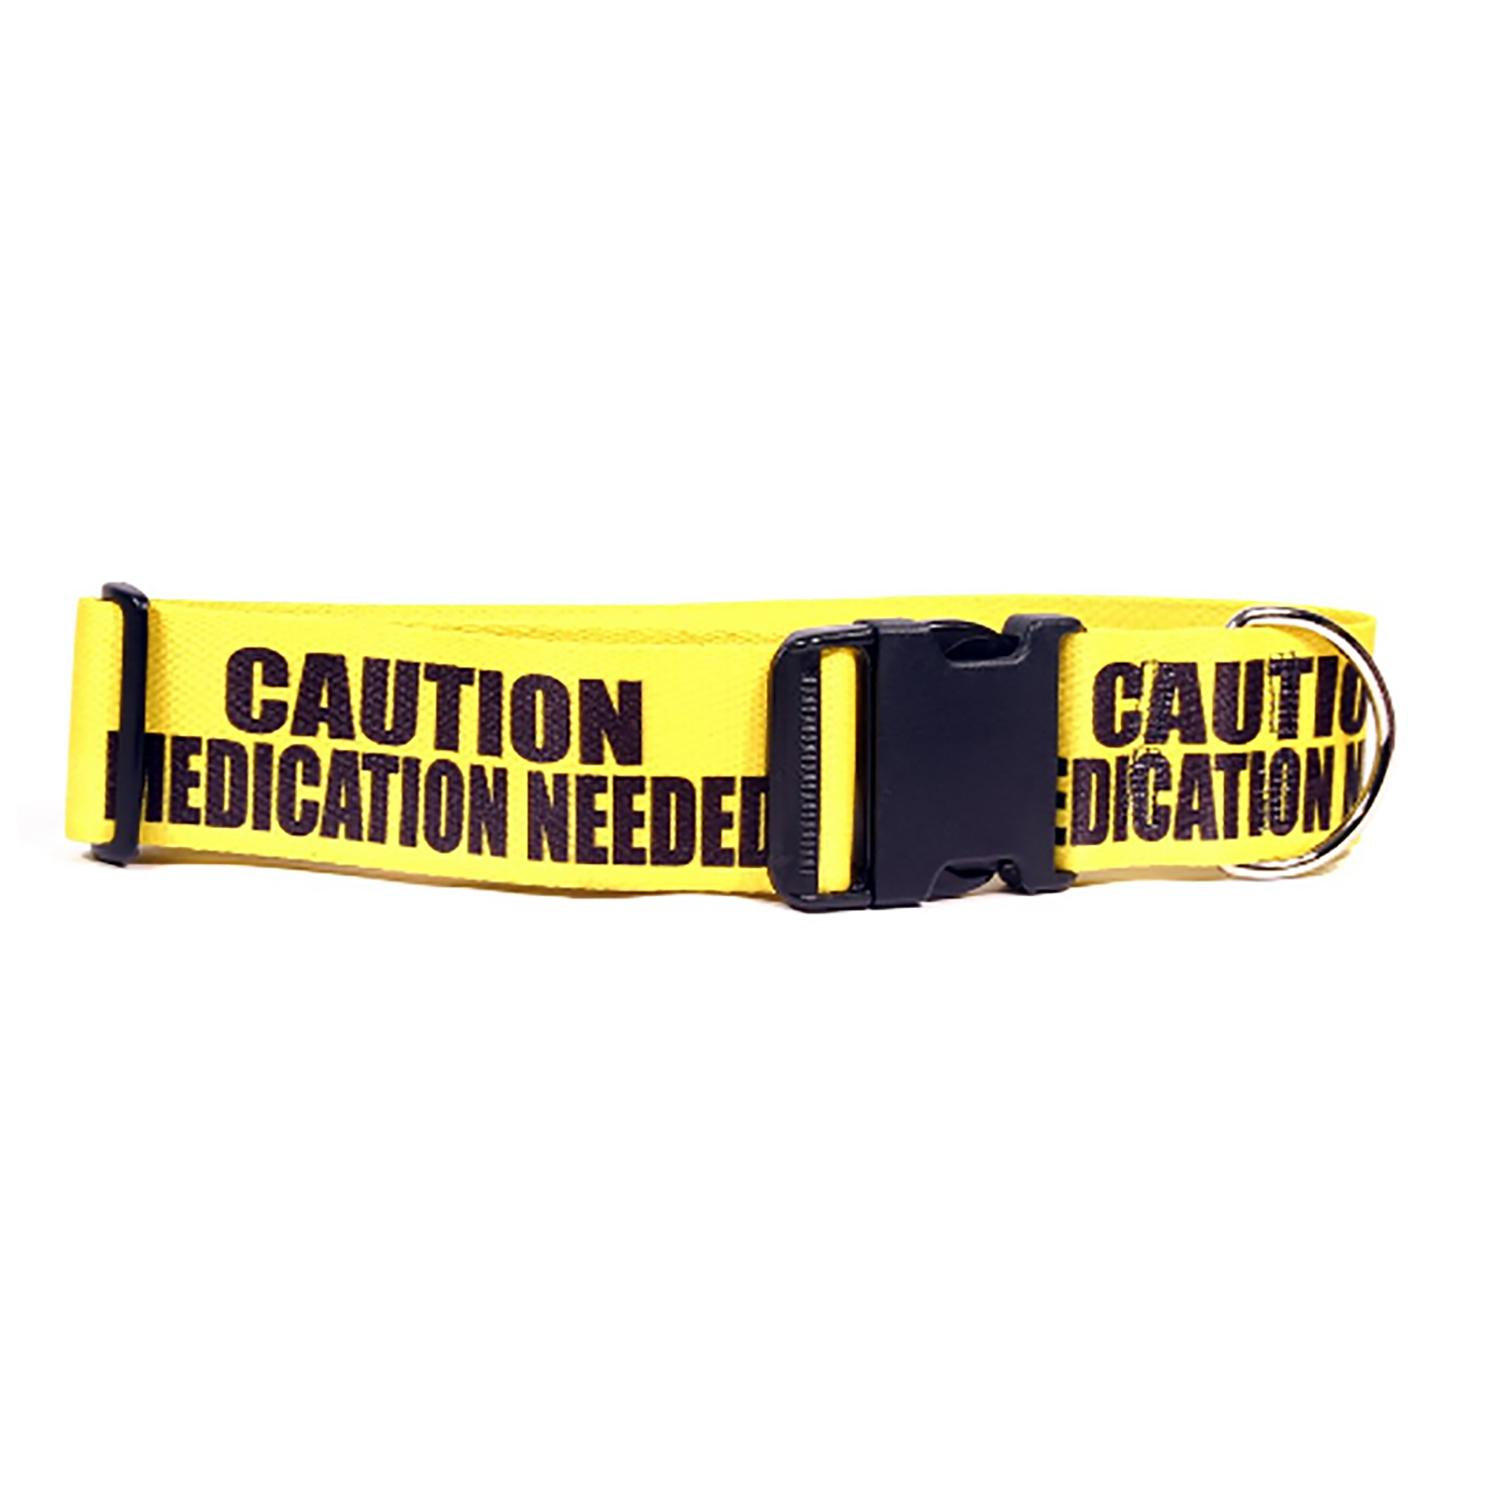 Caution Dog Collar by Yellow Dog - Medication Needed